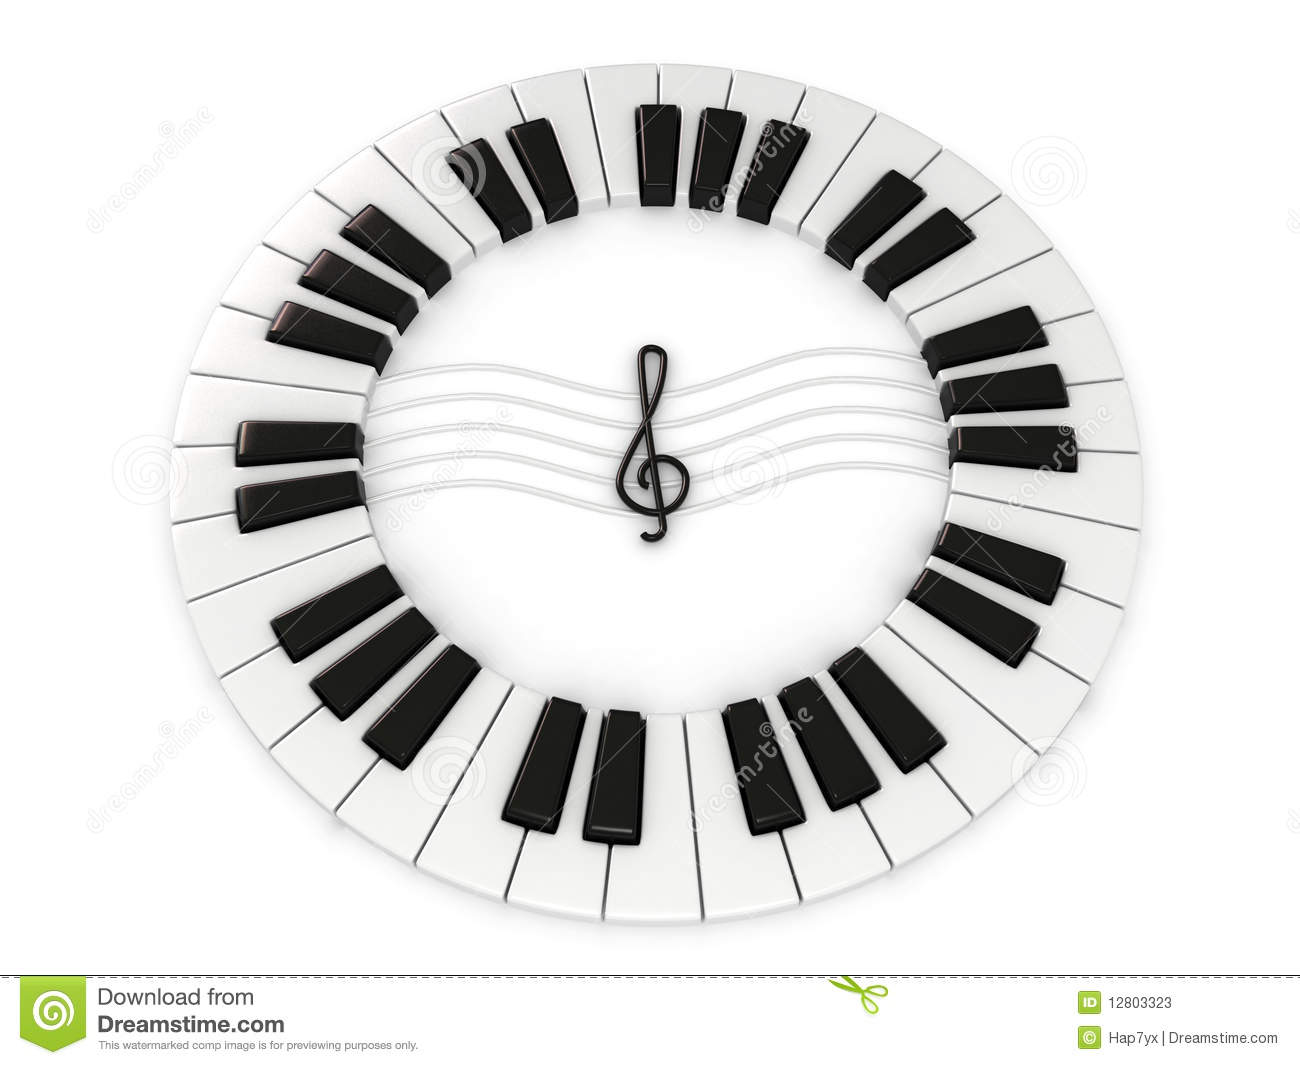 Chave do piano